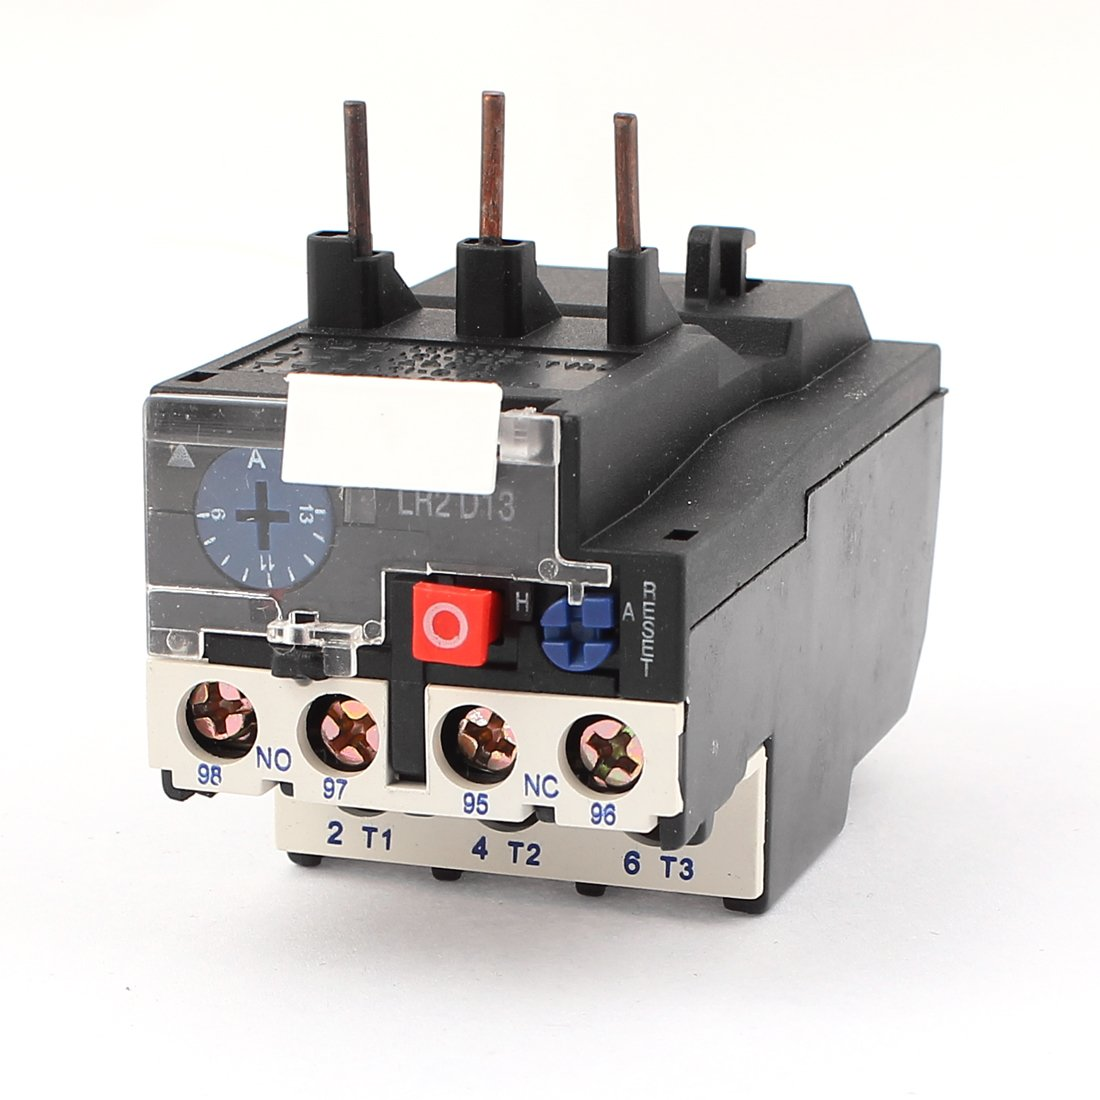 JR28-25 13A 1NO 1NC 3 Phases Adjustable Motor Protector Thermal Overload Relay